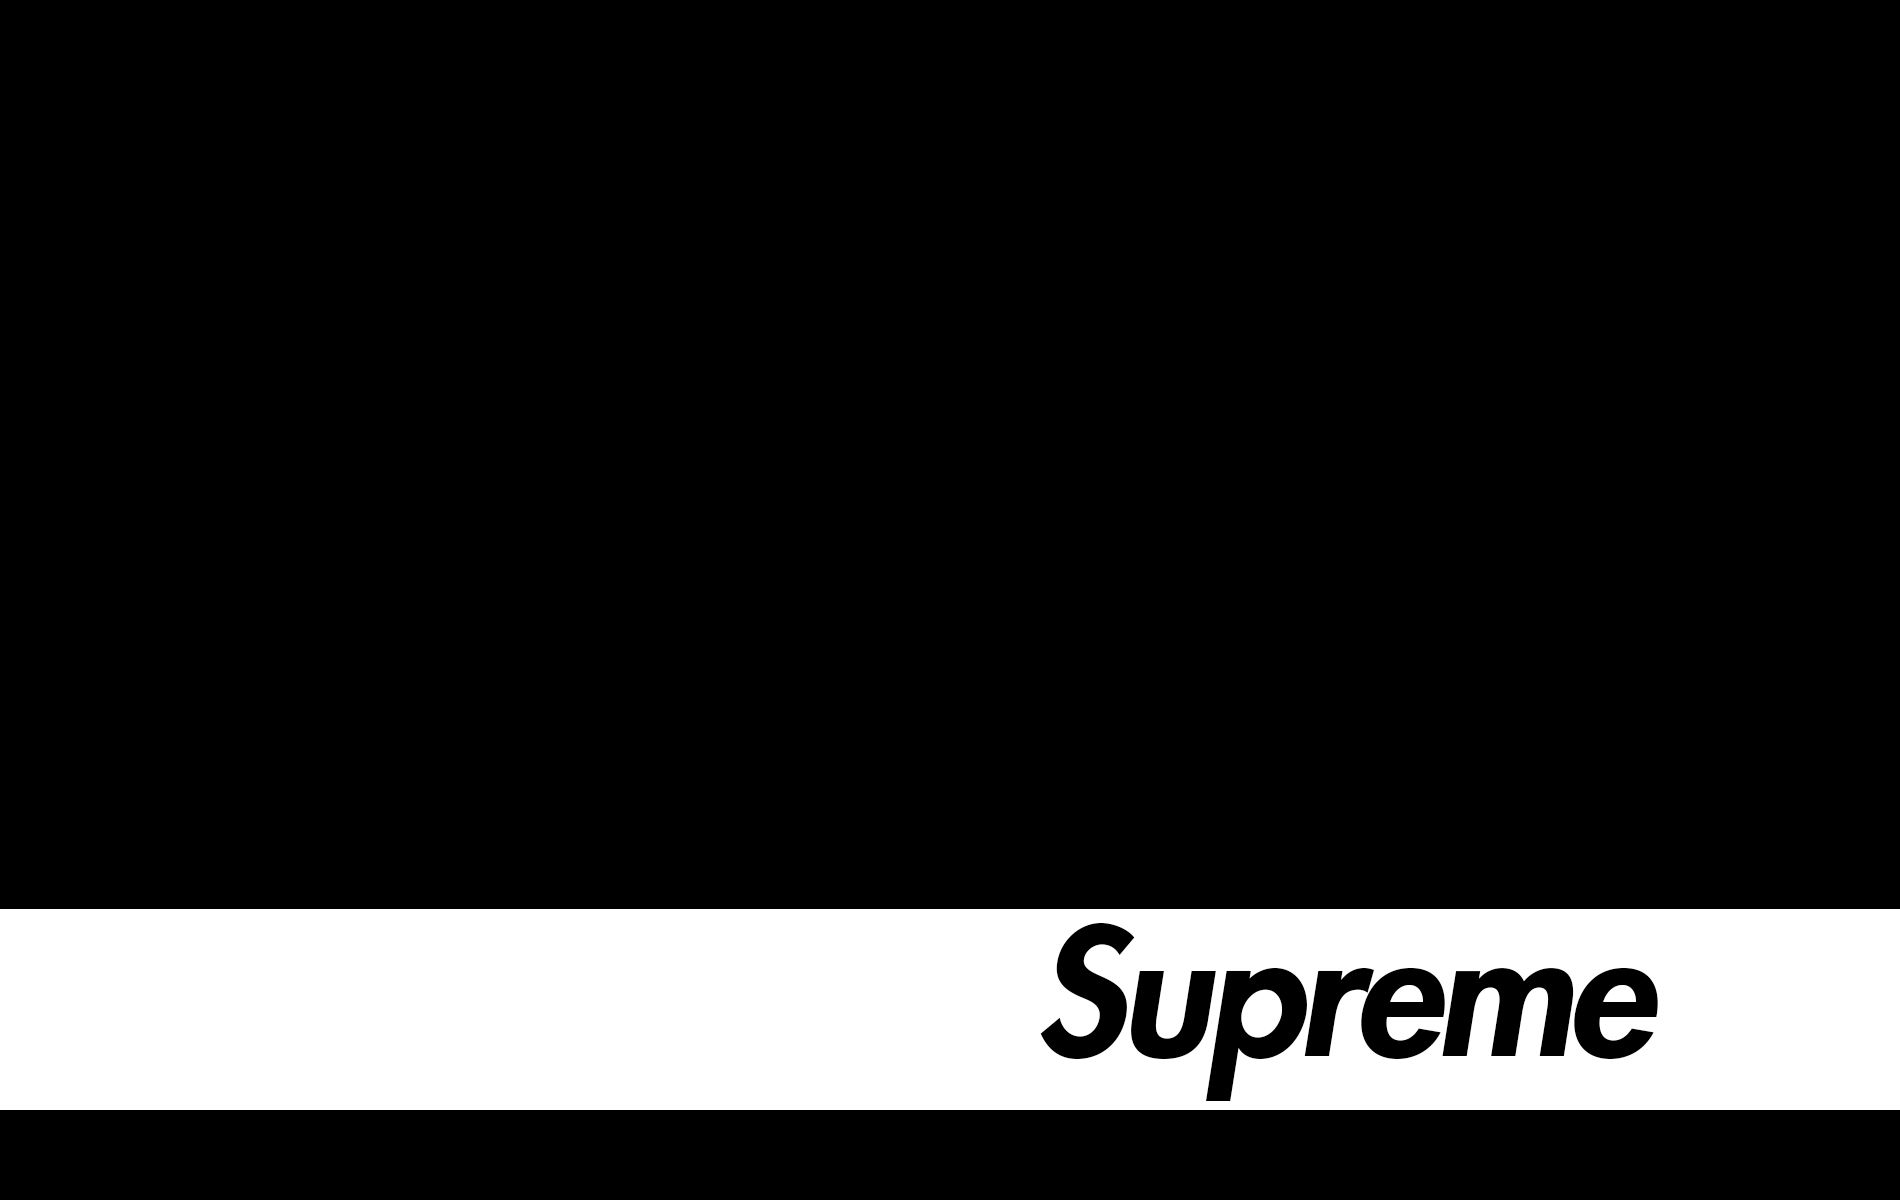 70 Supreme Wallpapers In 4k Allhdwallpapers Supreme Wallpaper Hypebeast Wallpaper Wallpaper